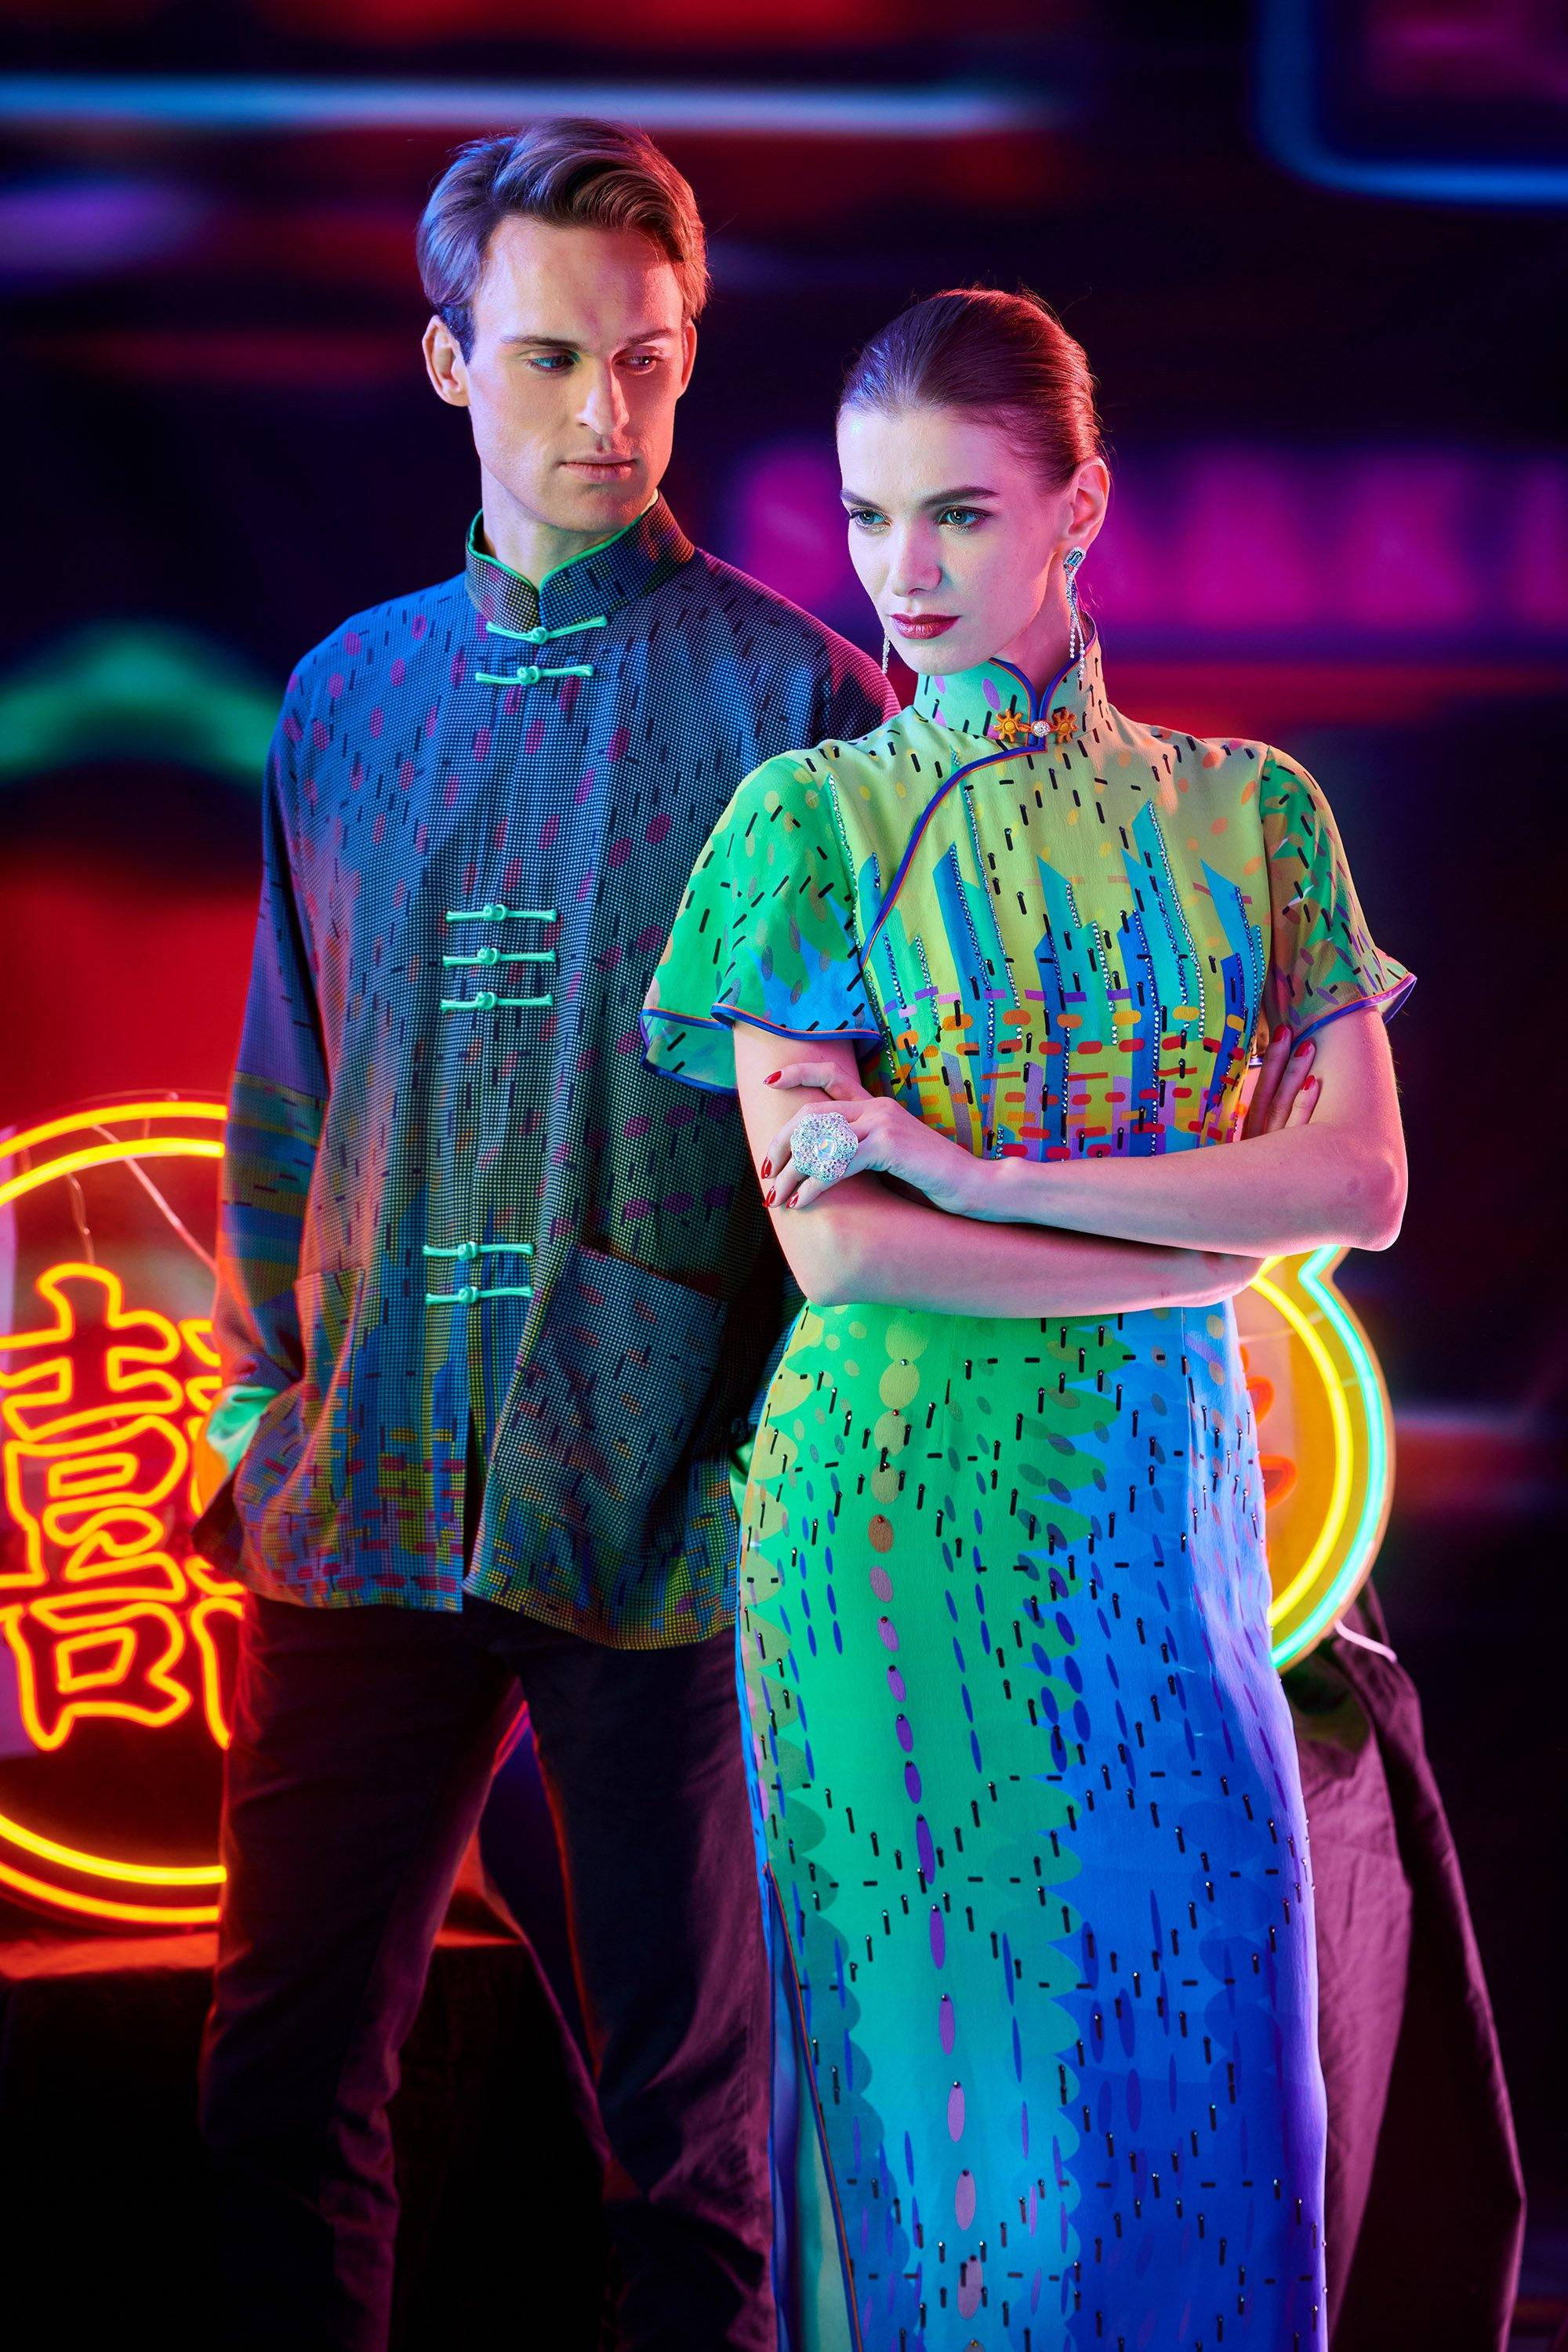 【SUNRISE SUNSET】Masterpiece Collection Haute Couture 100% Silk Cheongsam (Short Sleeve/Tailored Fit) - THE SPARKLE COLLECTION by GERMAN POOL